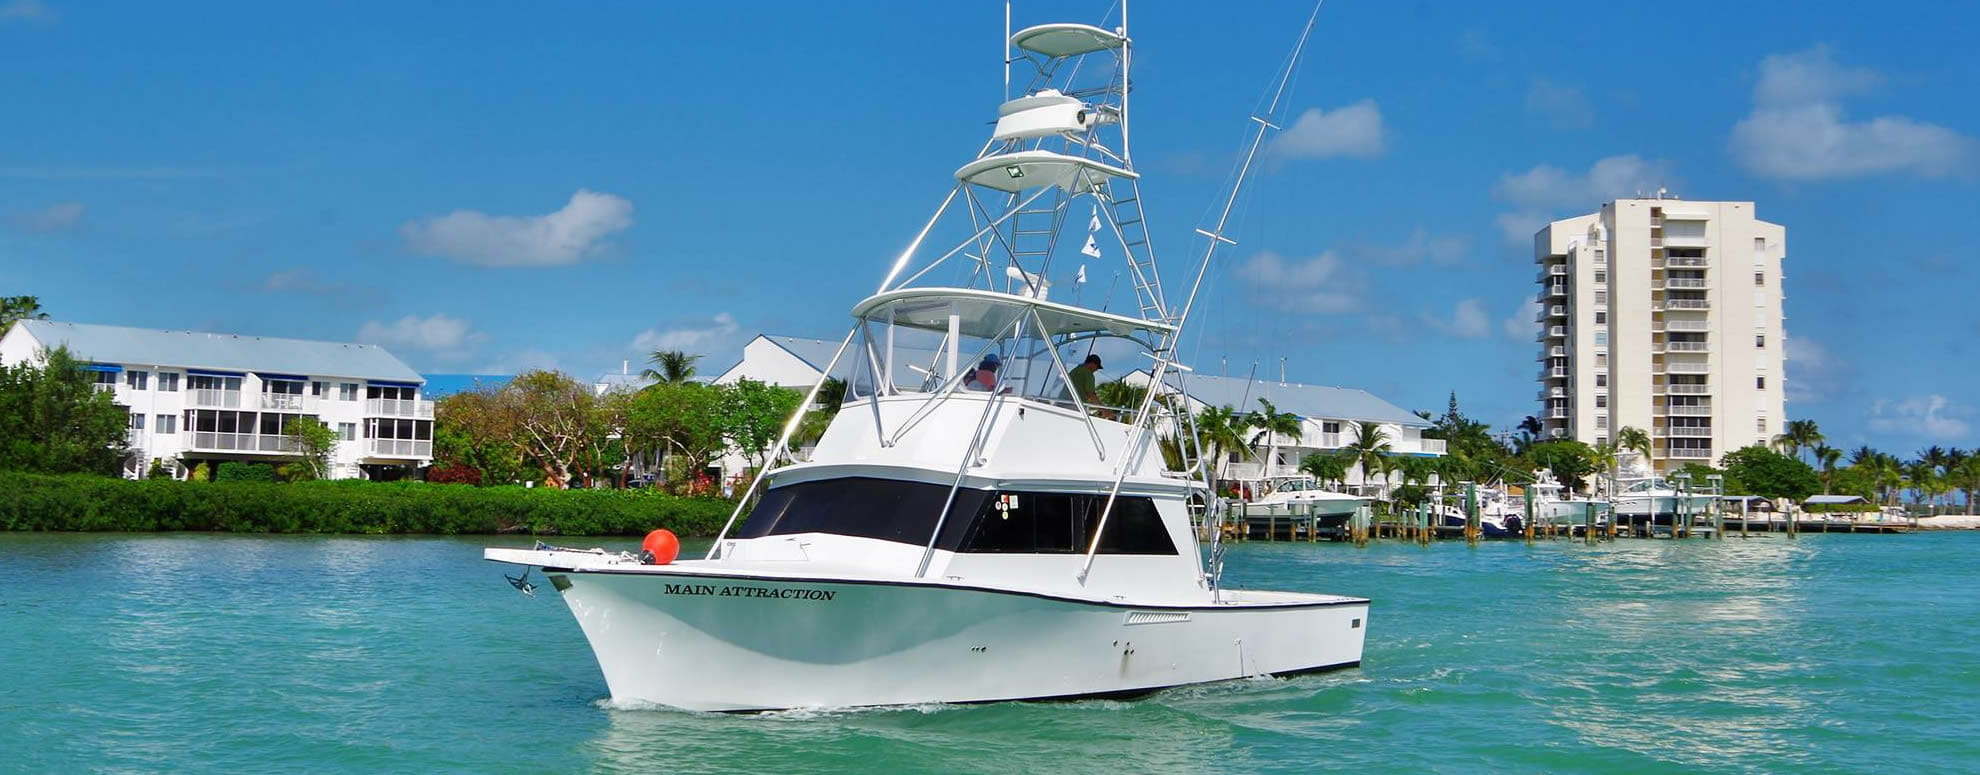 Fishing Charter Reviews